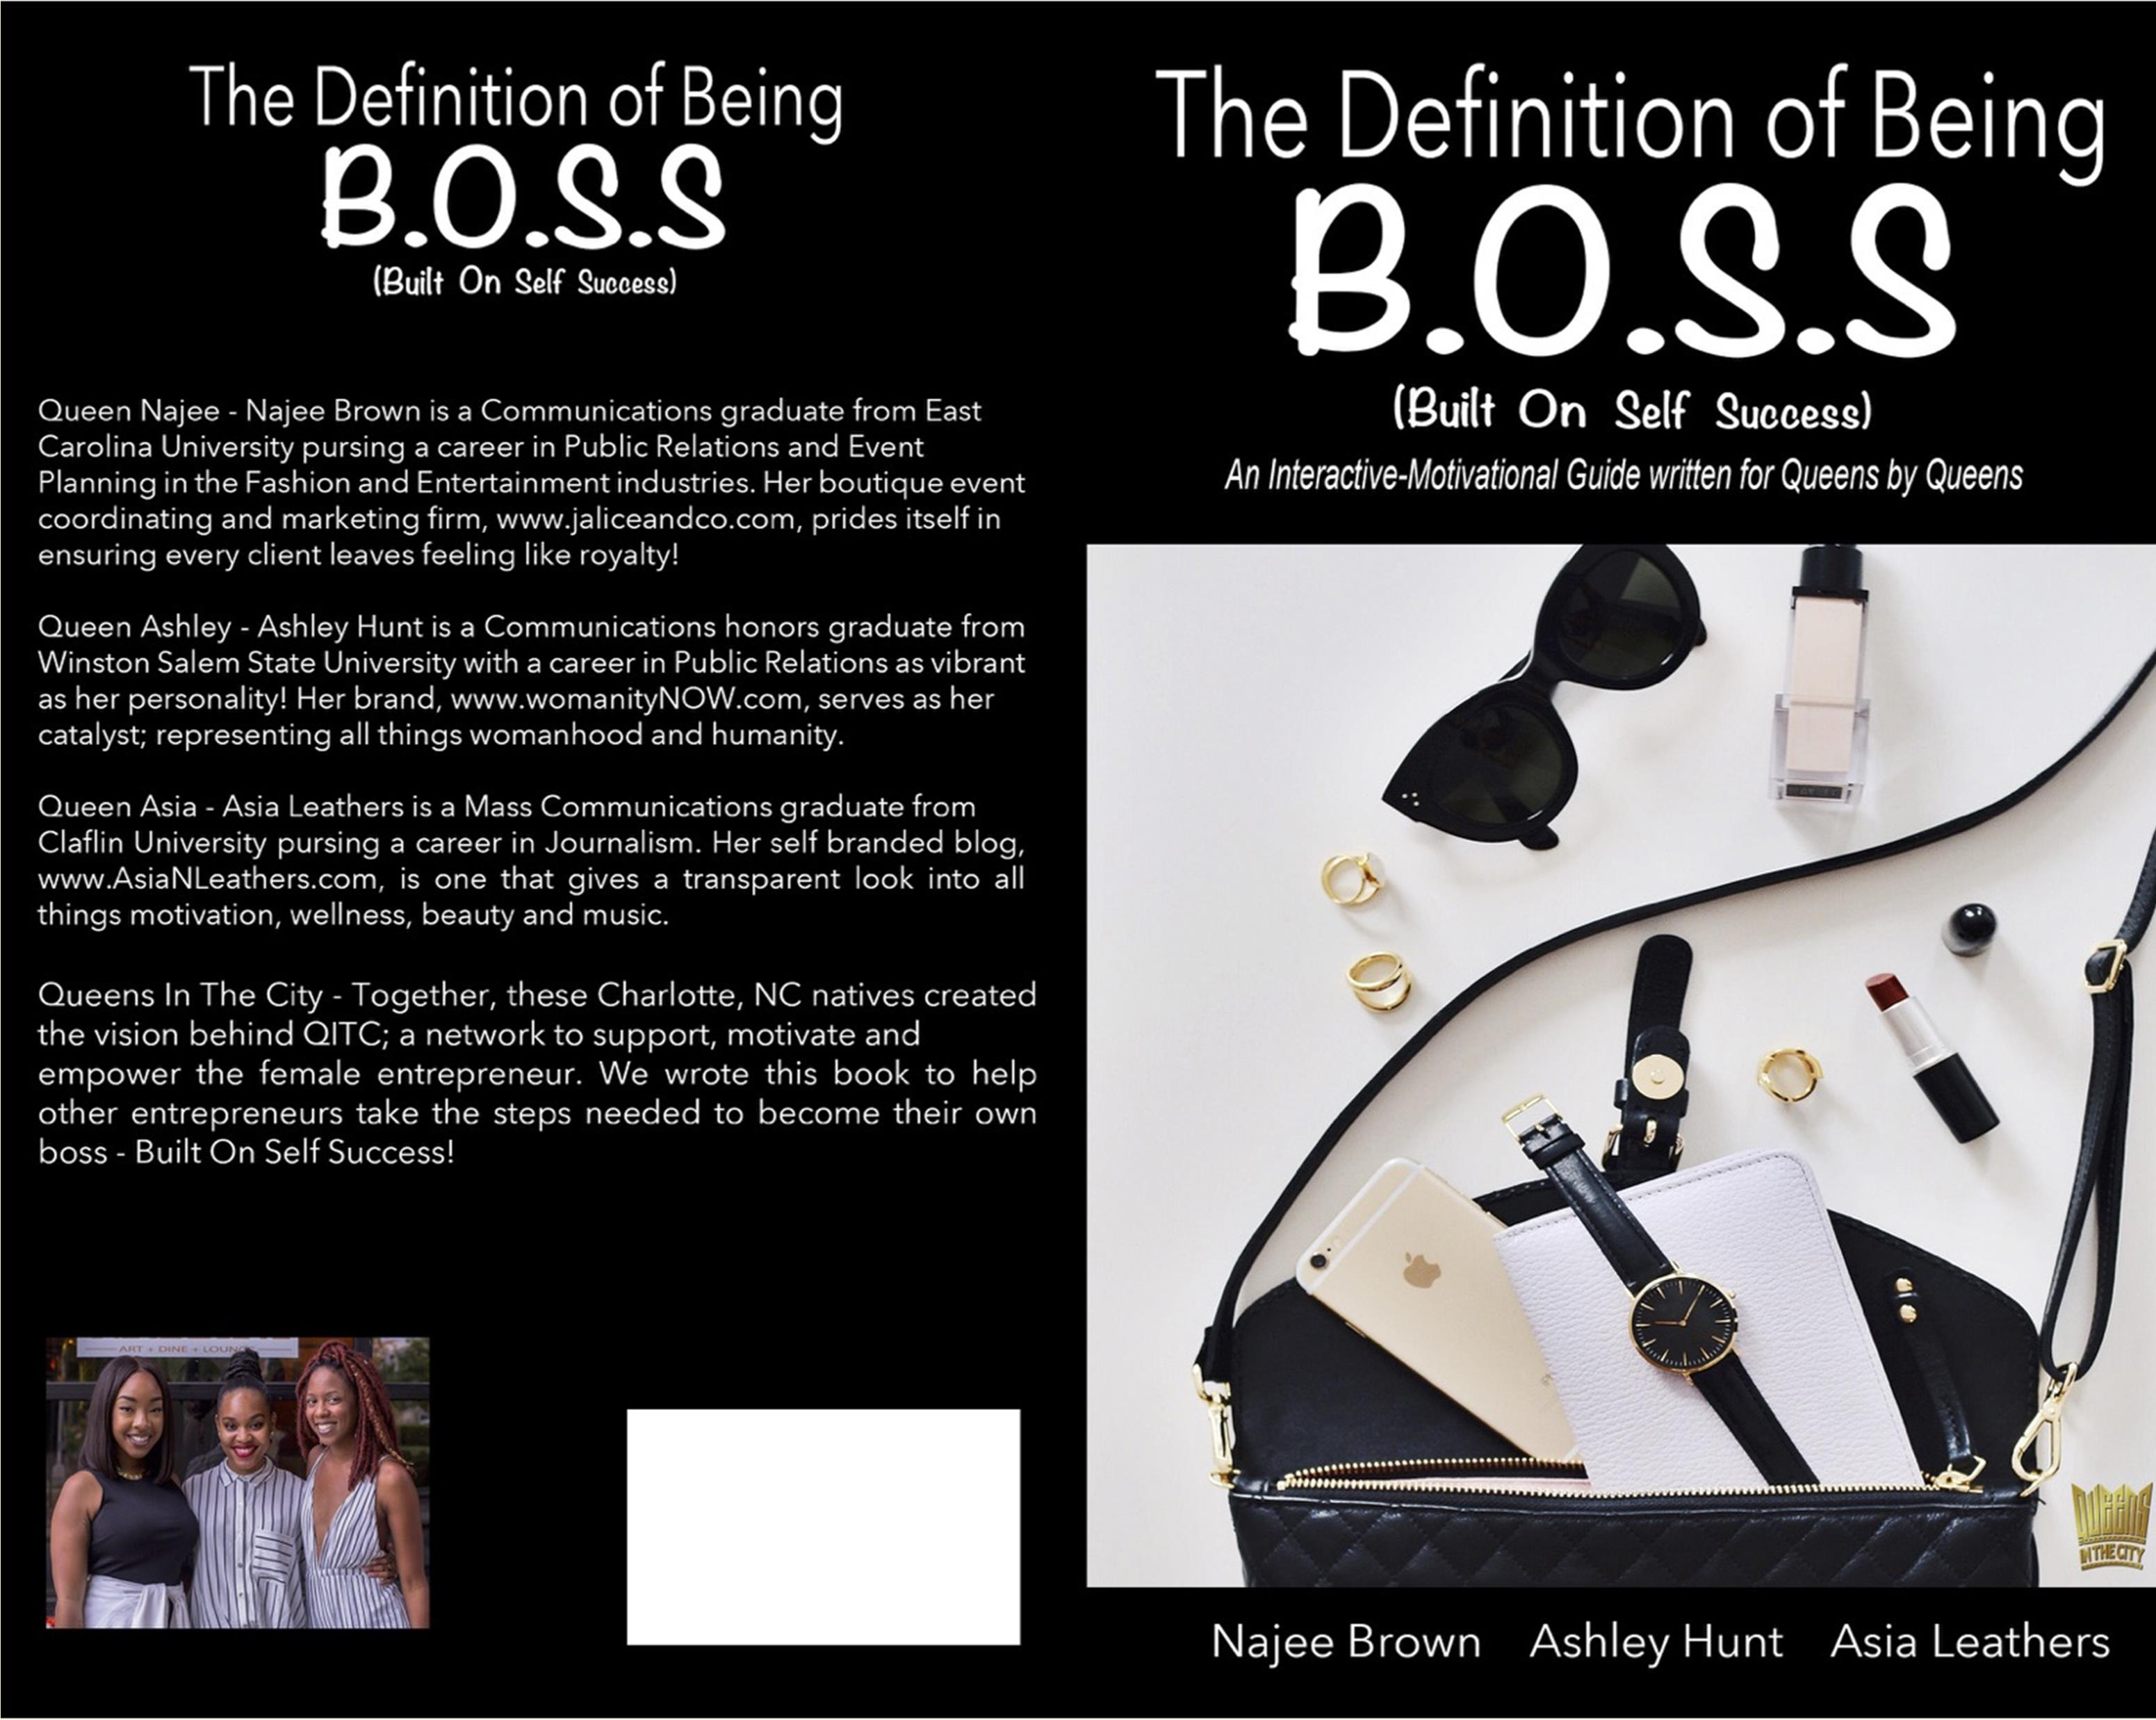 The Definition of Being B.O.S.S. cover image